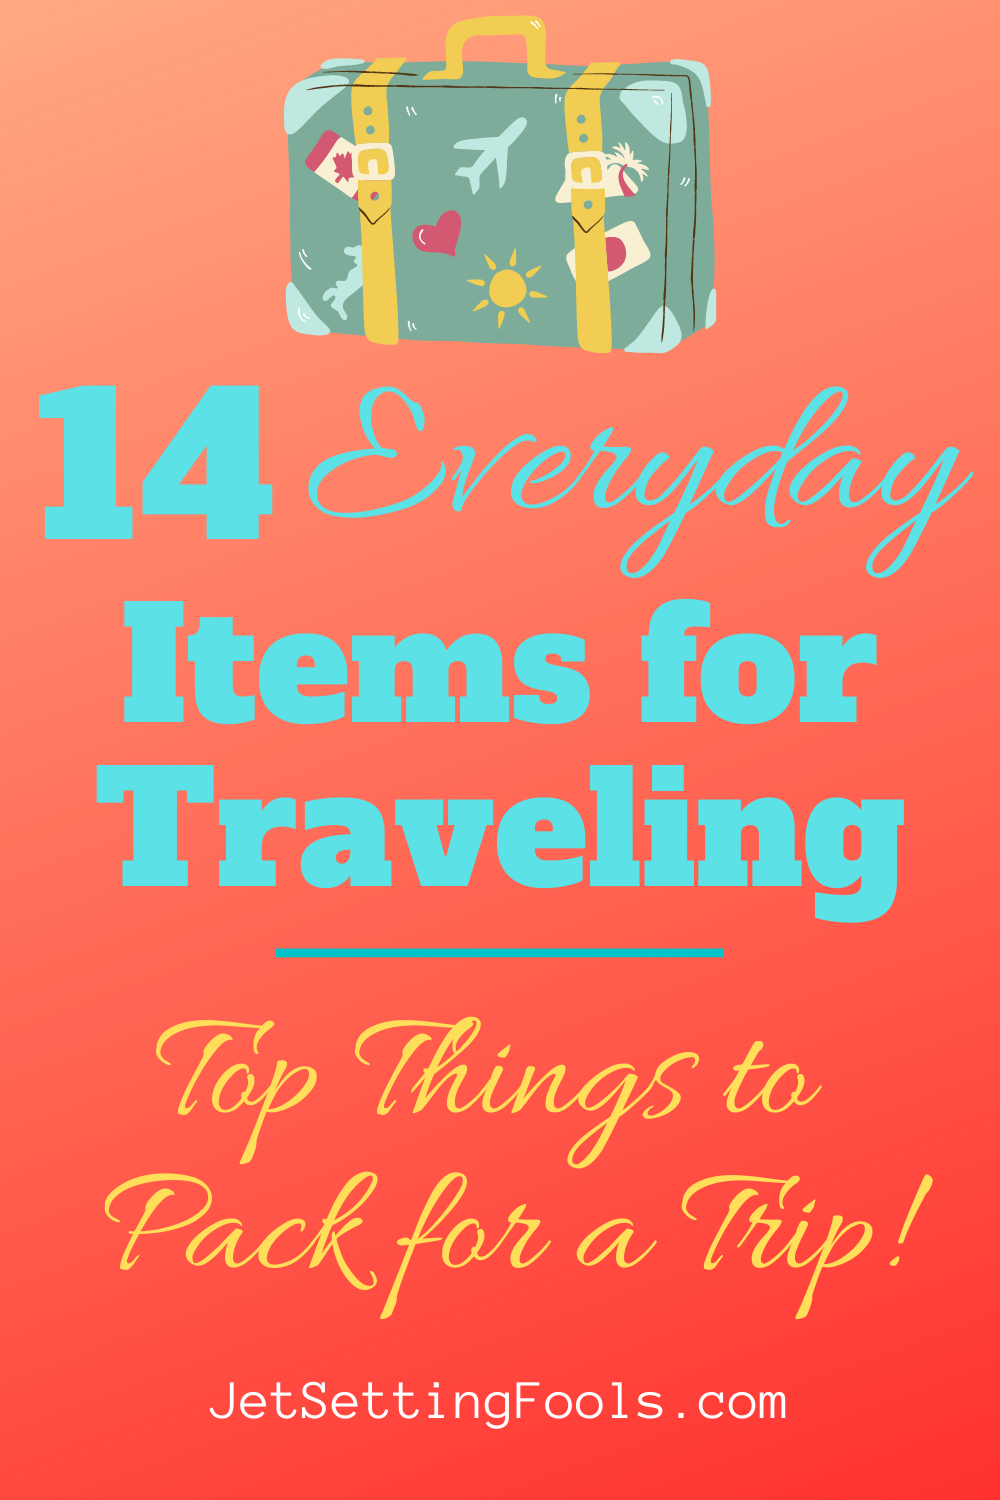 Everyday Items for Travel Things to Pack for a Trip by JetSettingFools.com